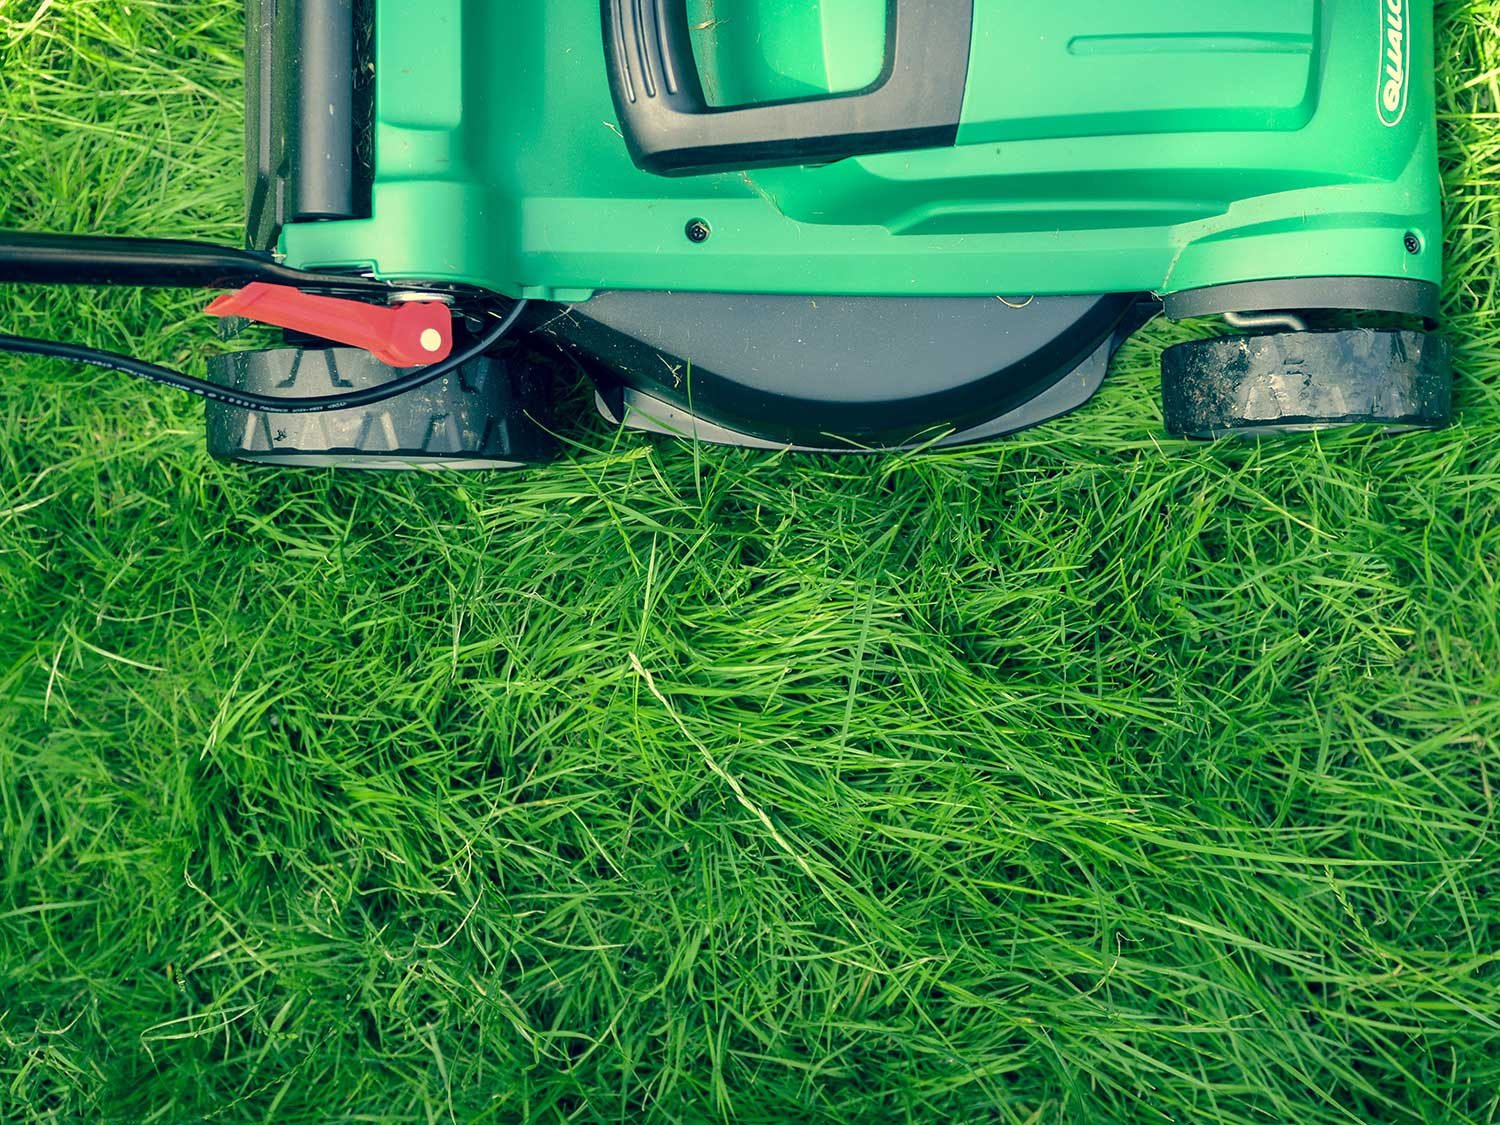 Electric lawnmowers mowing grass.